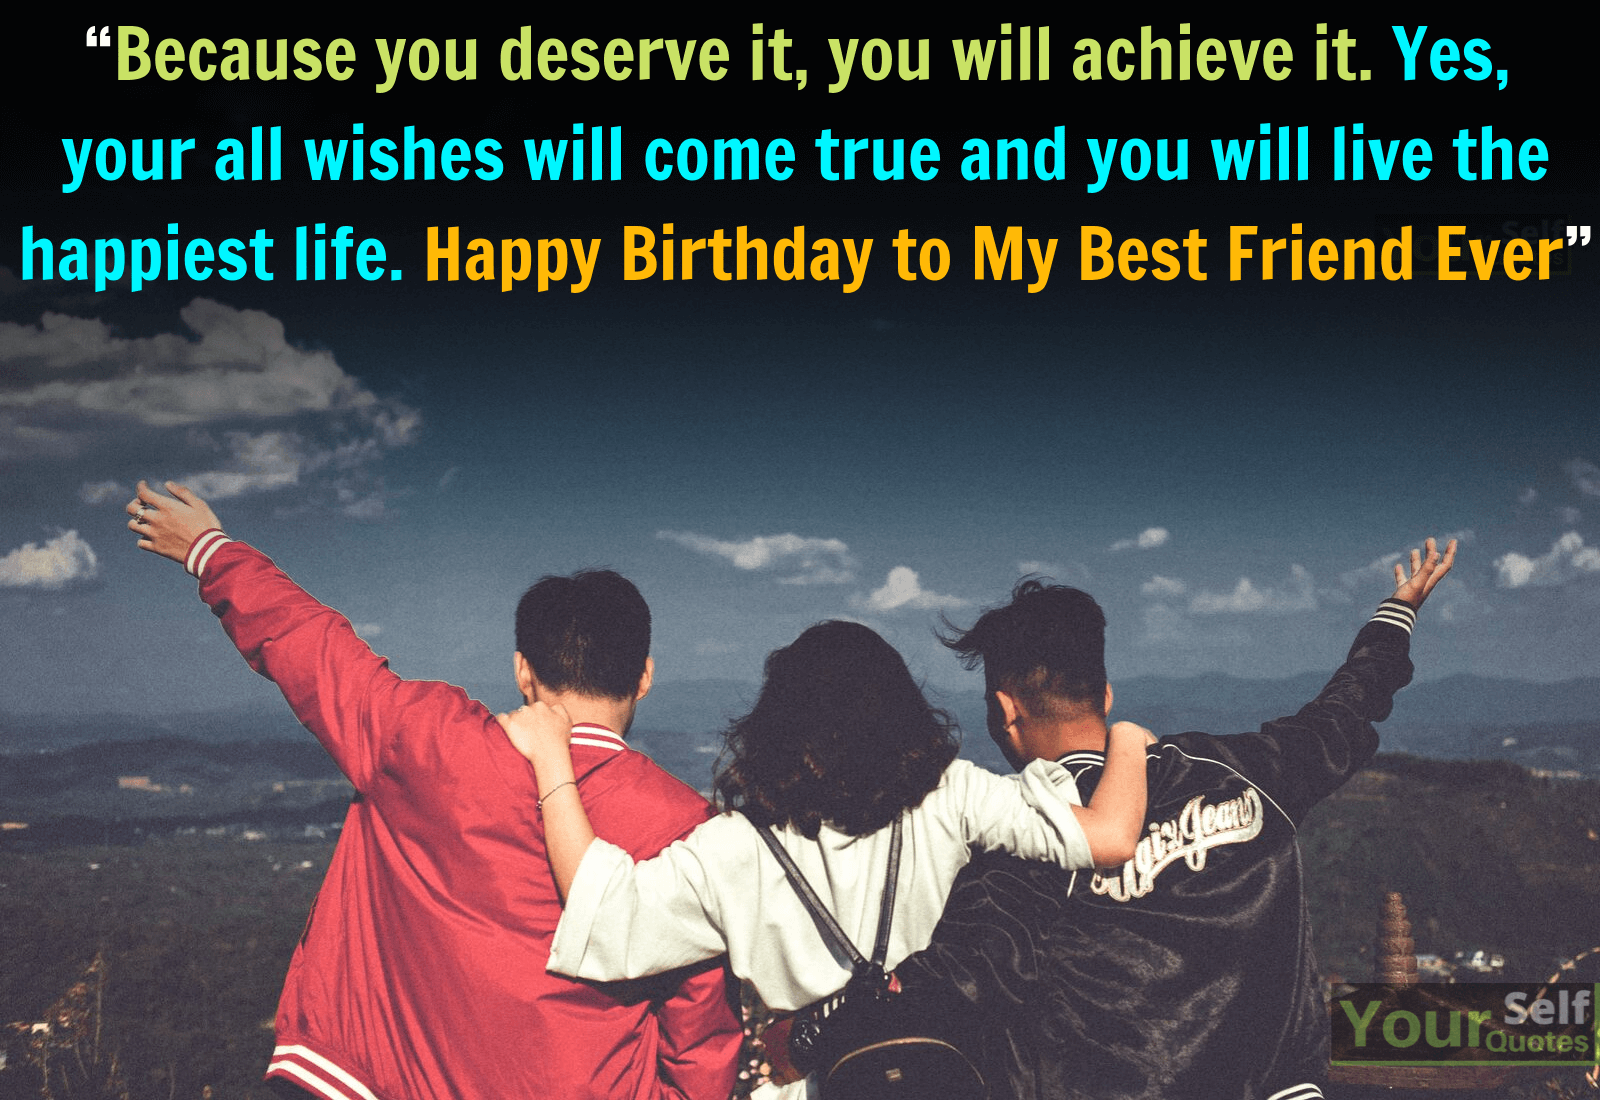 Happy Birthday Wishes Quotes for Friend, Family, Loved Ones ...